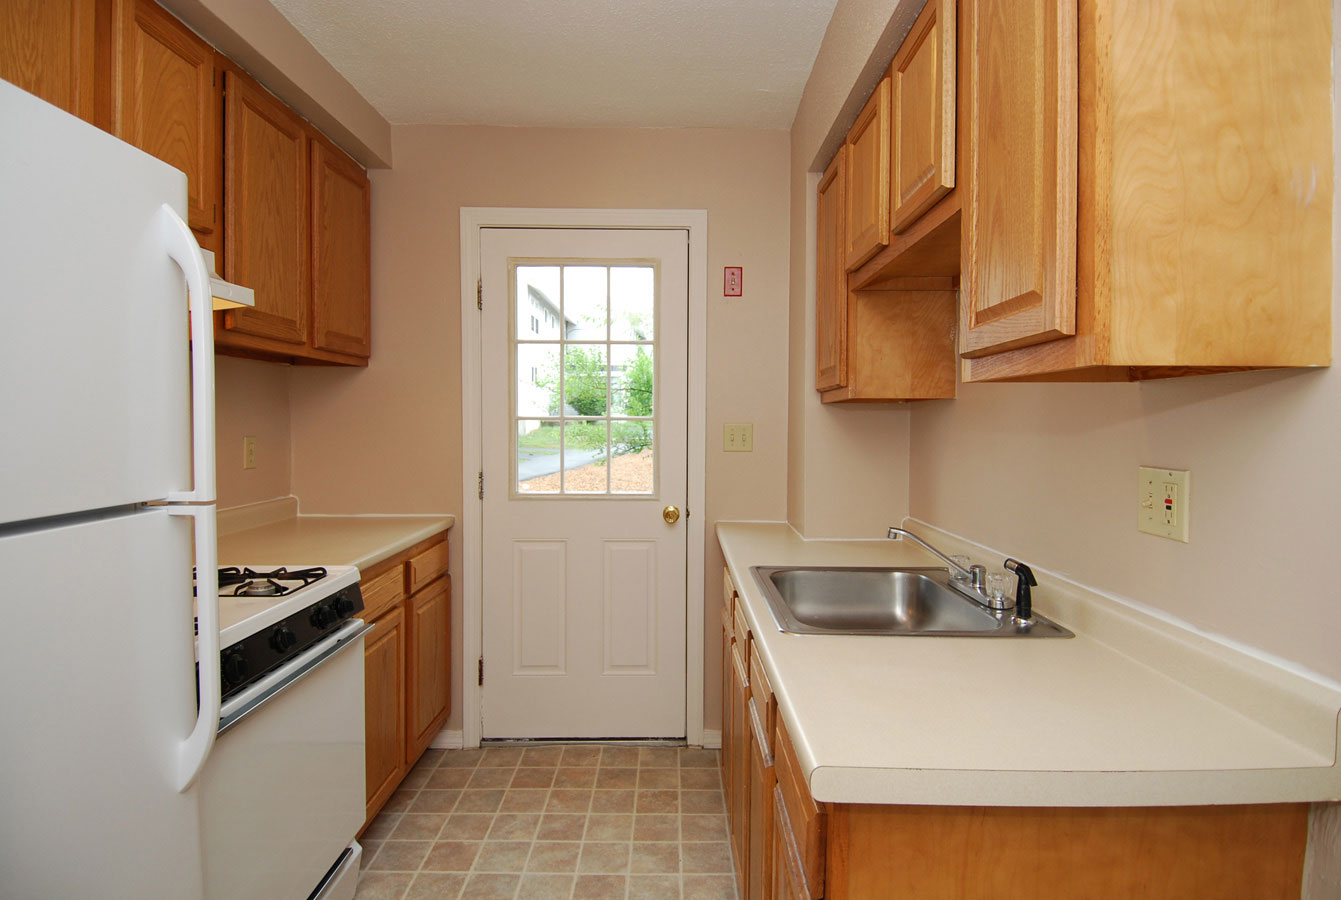 2 Bed Apartment Manchester 3 Bedroom Apartment In Manchester Nh At Wellington Terrace Apartments